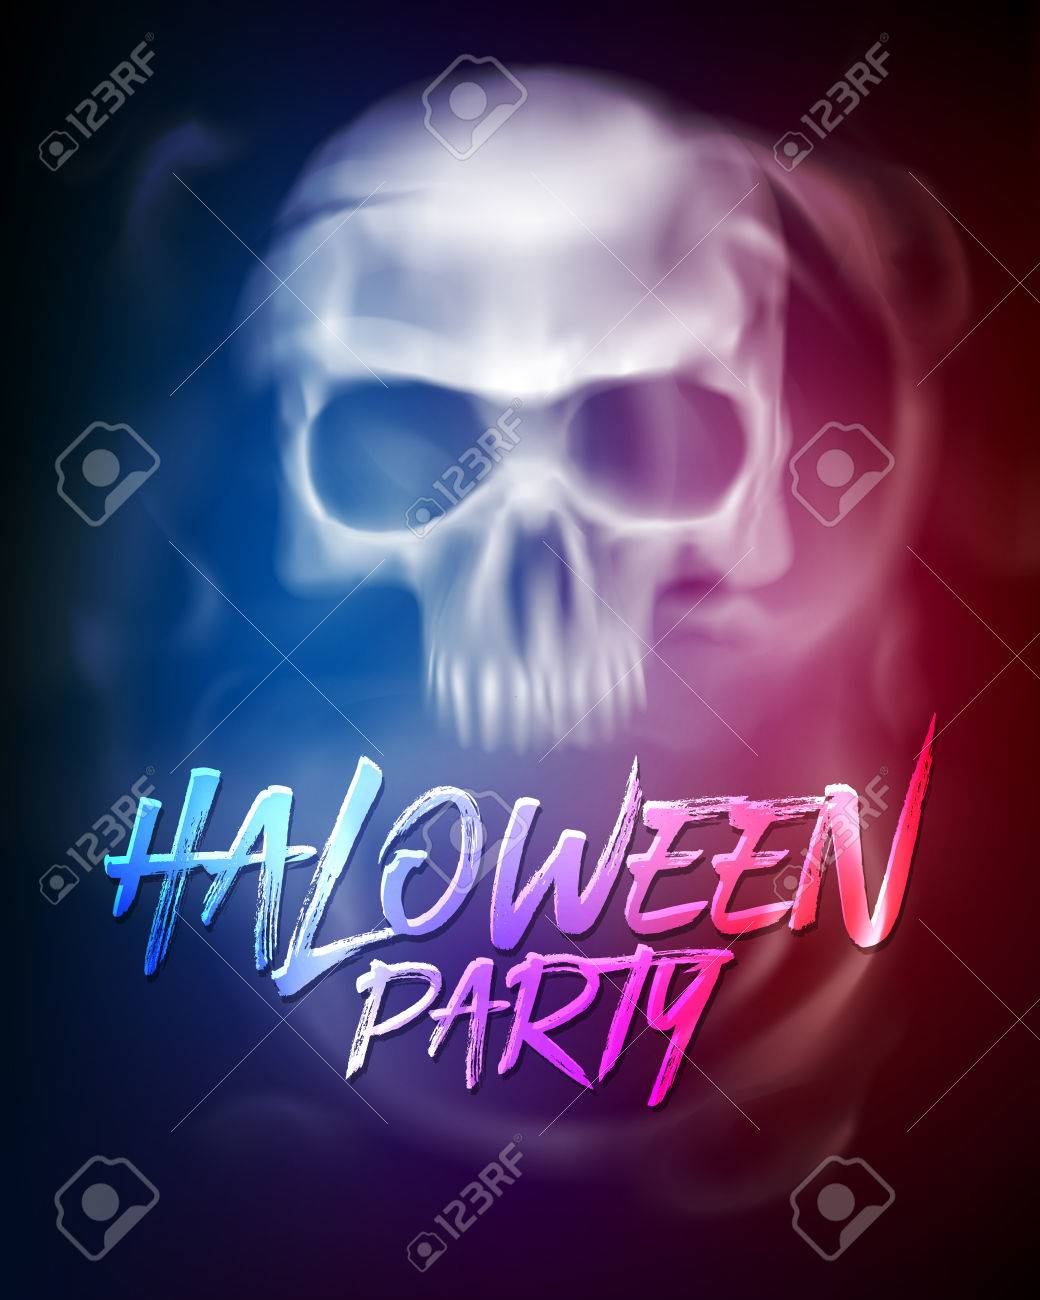 Halloween Party Flyer Or Brochure Template With Transparent Skull ...